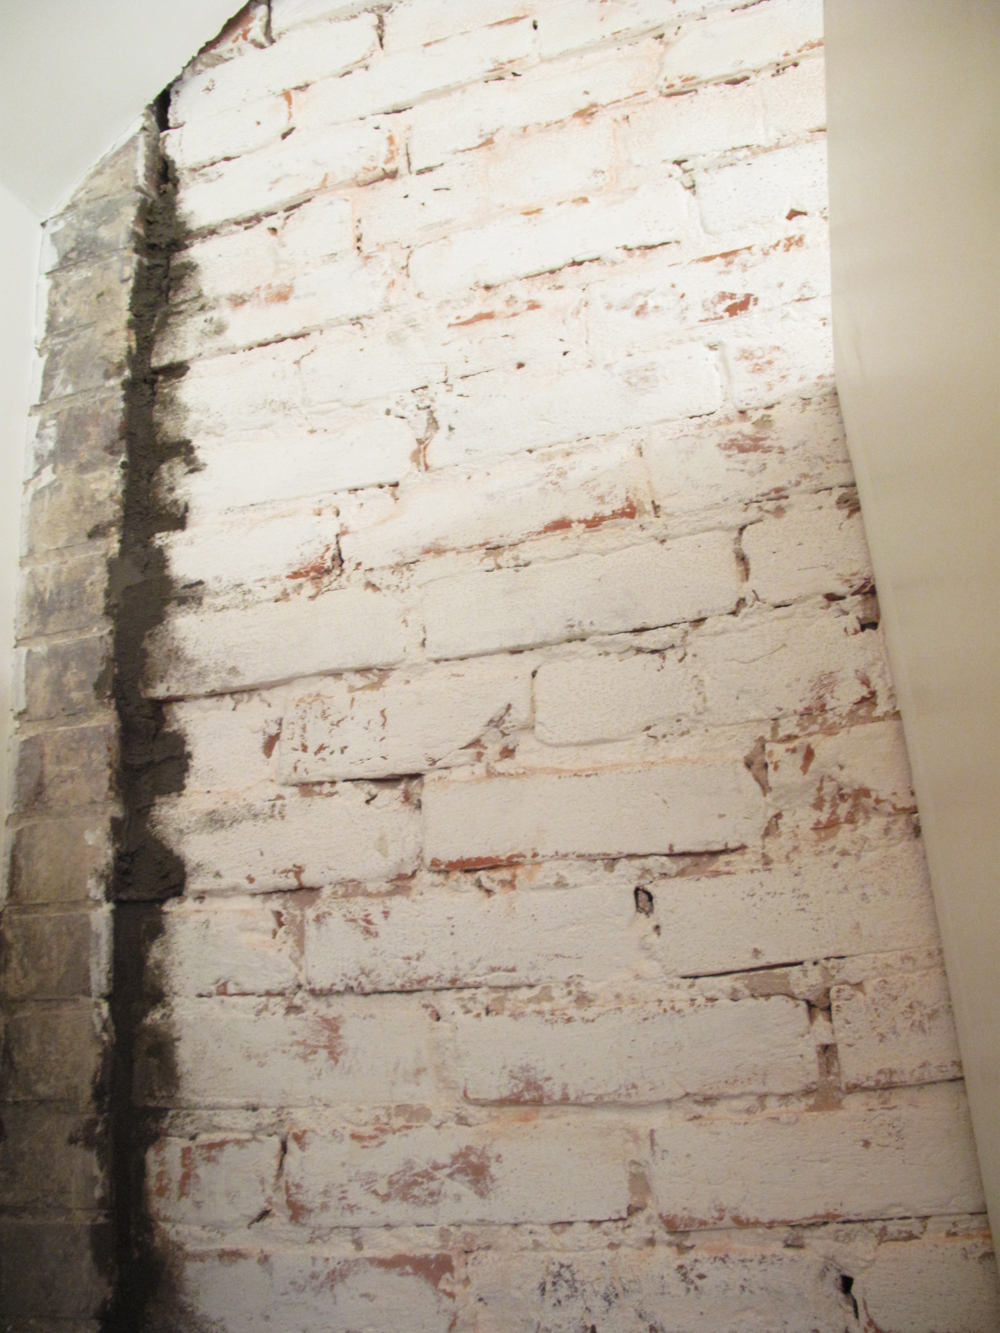 How to: Seal Whitewashed Brick